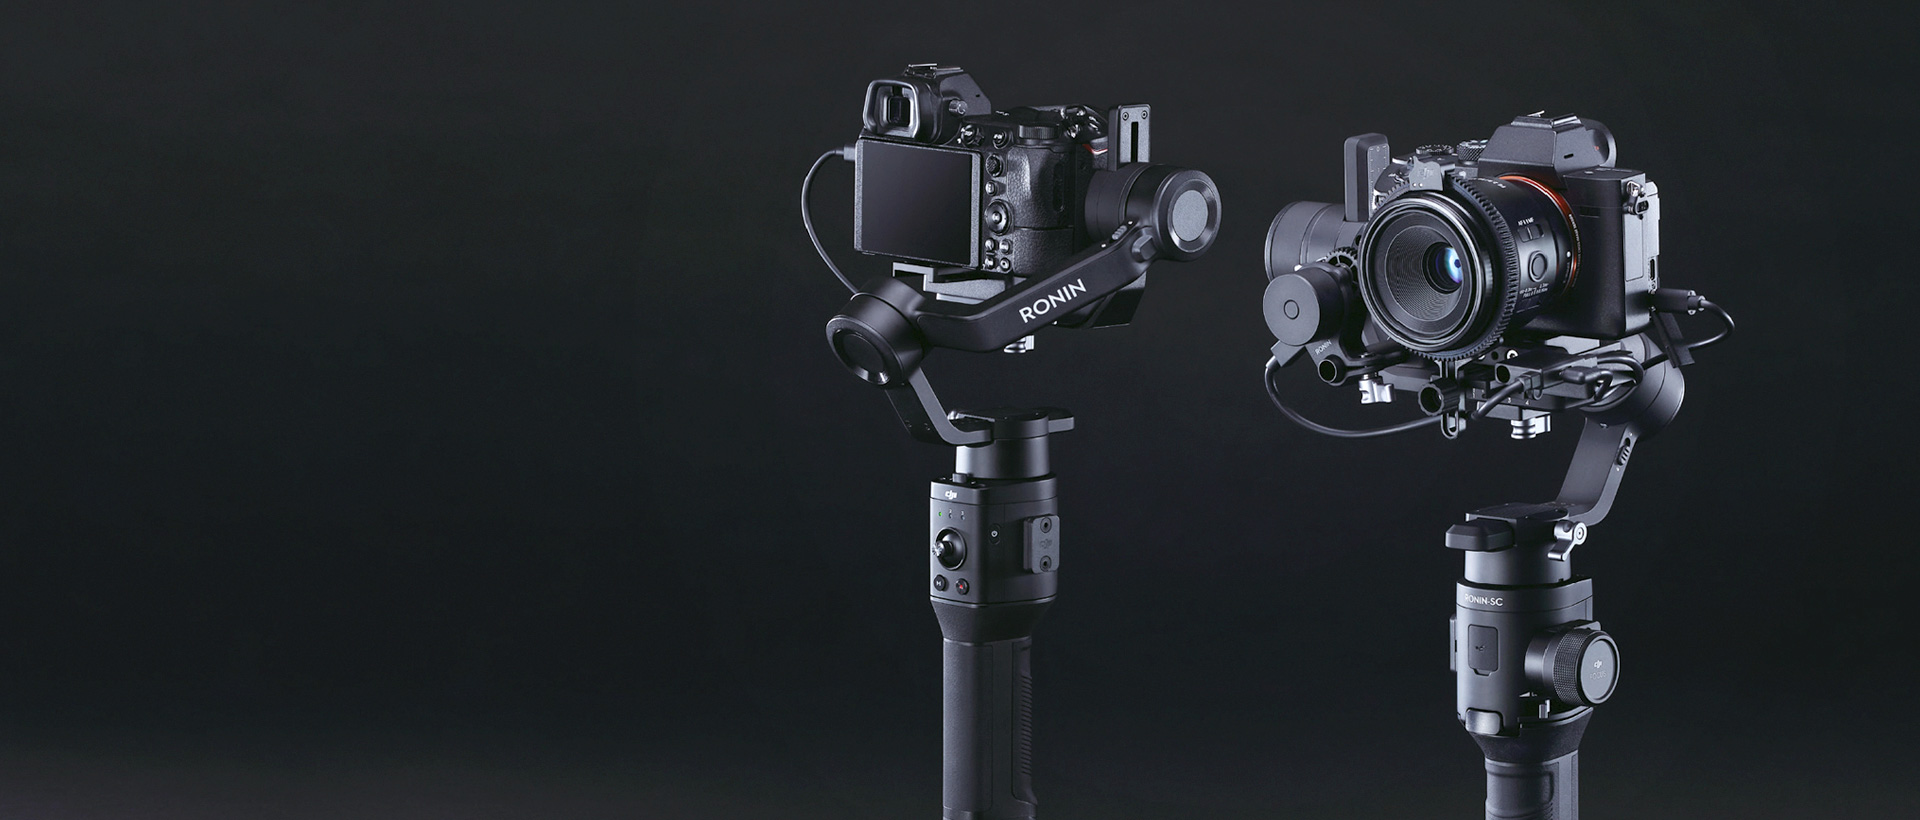 Challenge Accepted with Ronin-SC from DJI Store Sofia!